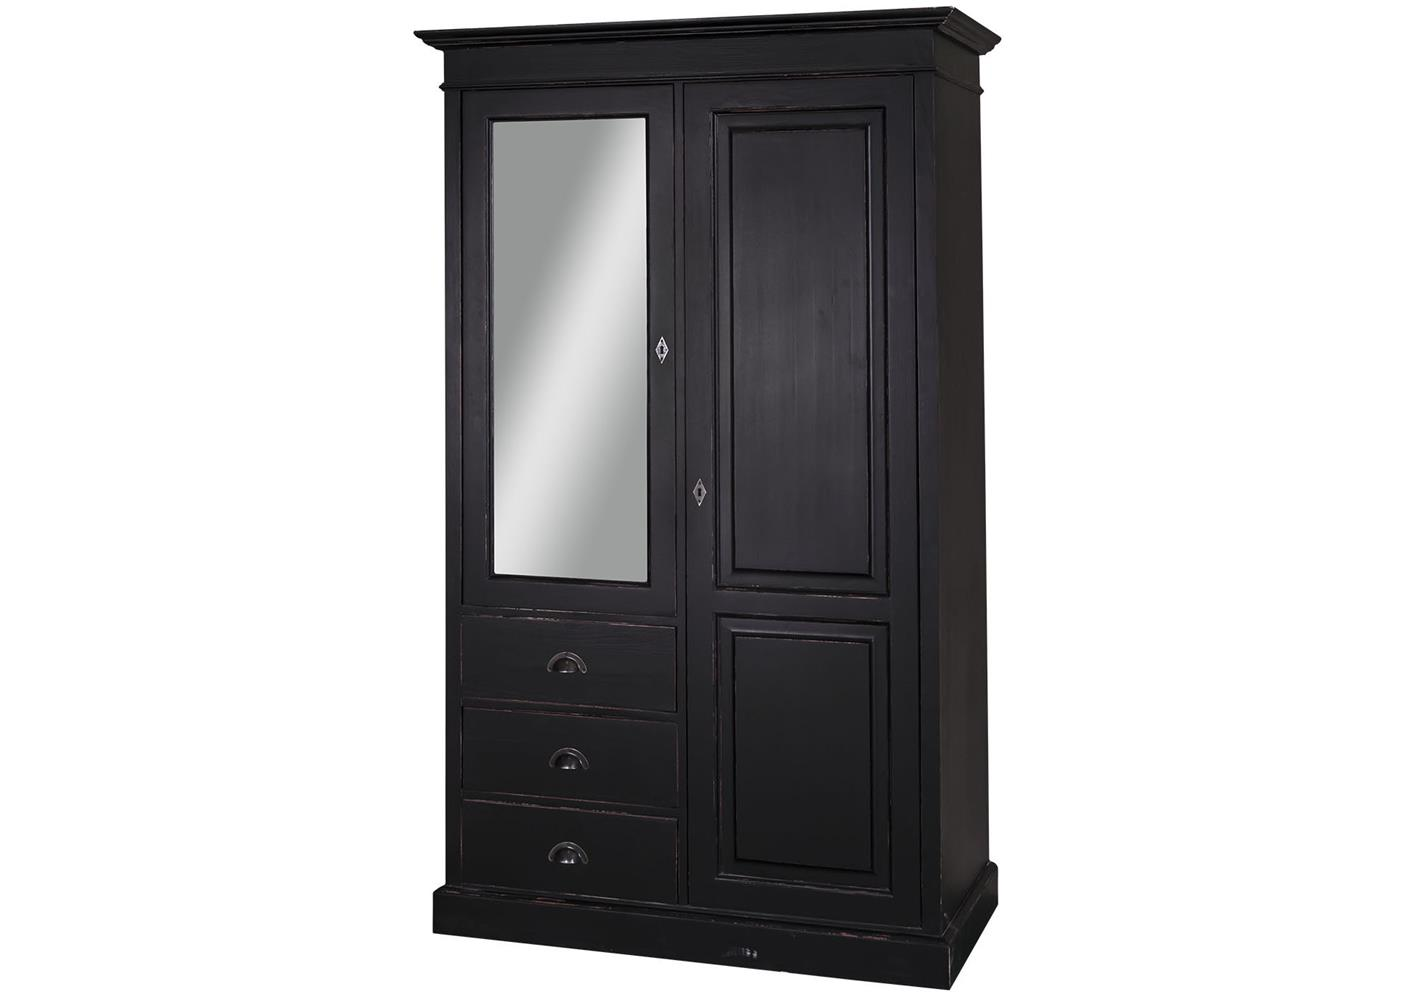 armoire penderie avec miroir maison design. Black Bedroom Furniture Sets. Home Design Ideas